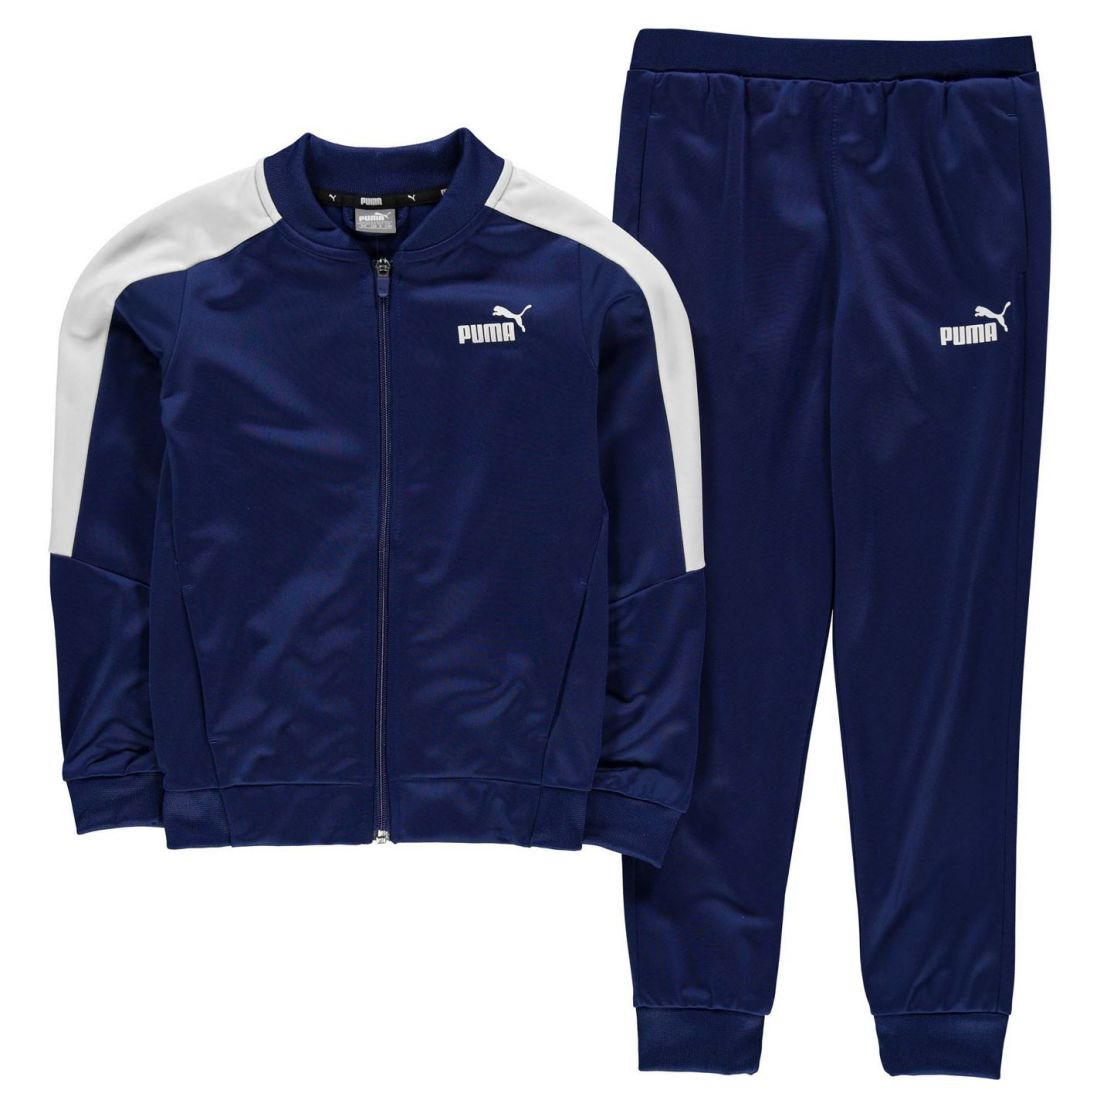 a0f41a5c46e7 Image is loading Puma-Kids-Boys-BB-Polyester-Tracksuit-Junior-Poly-